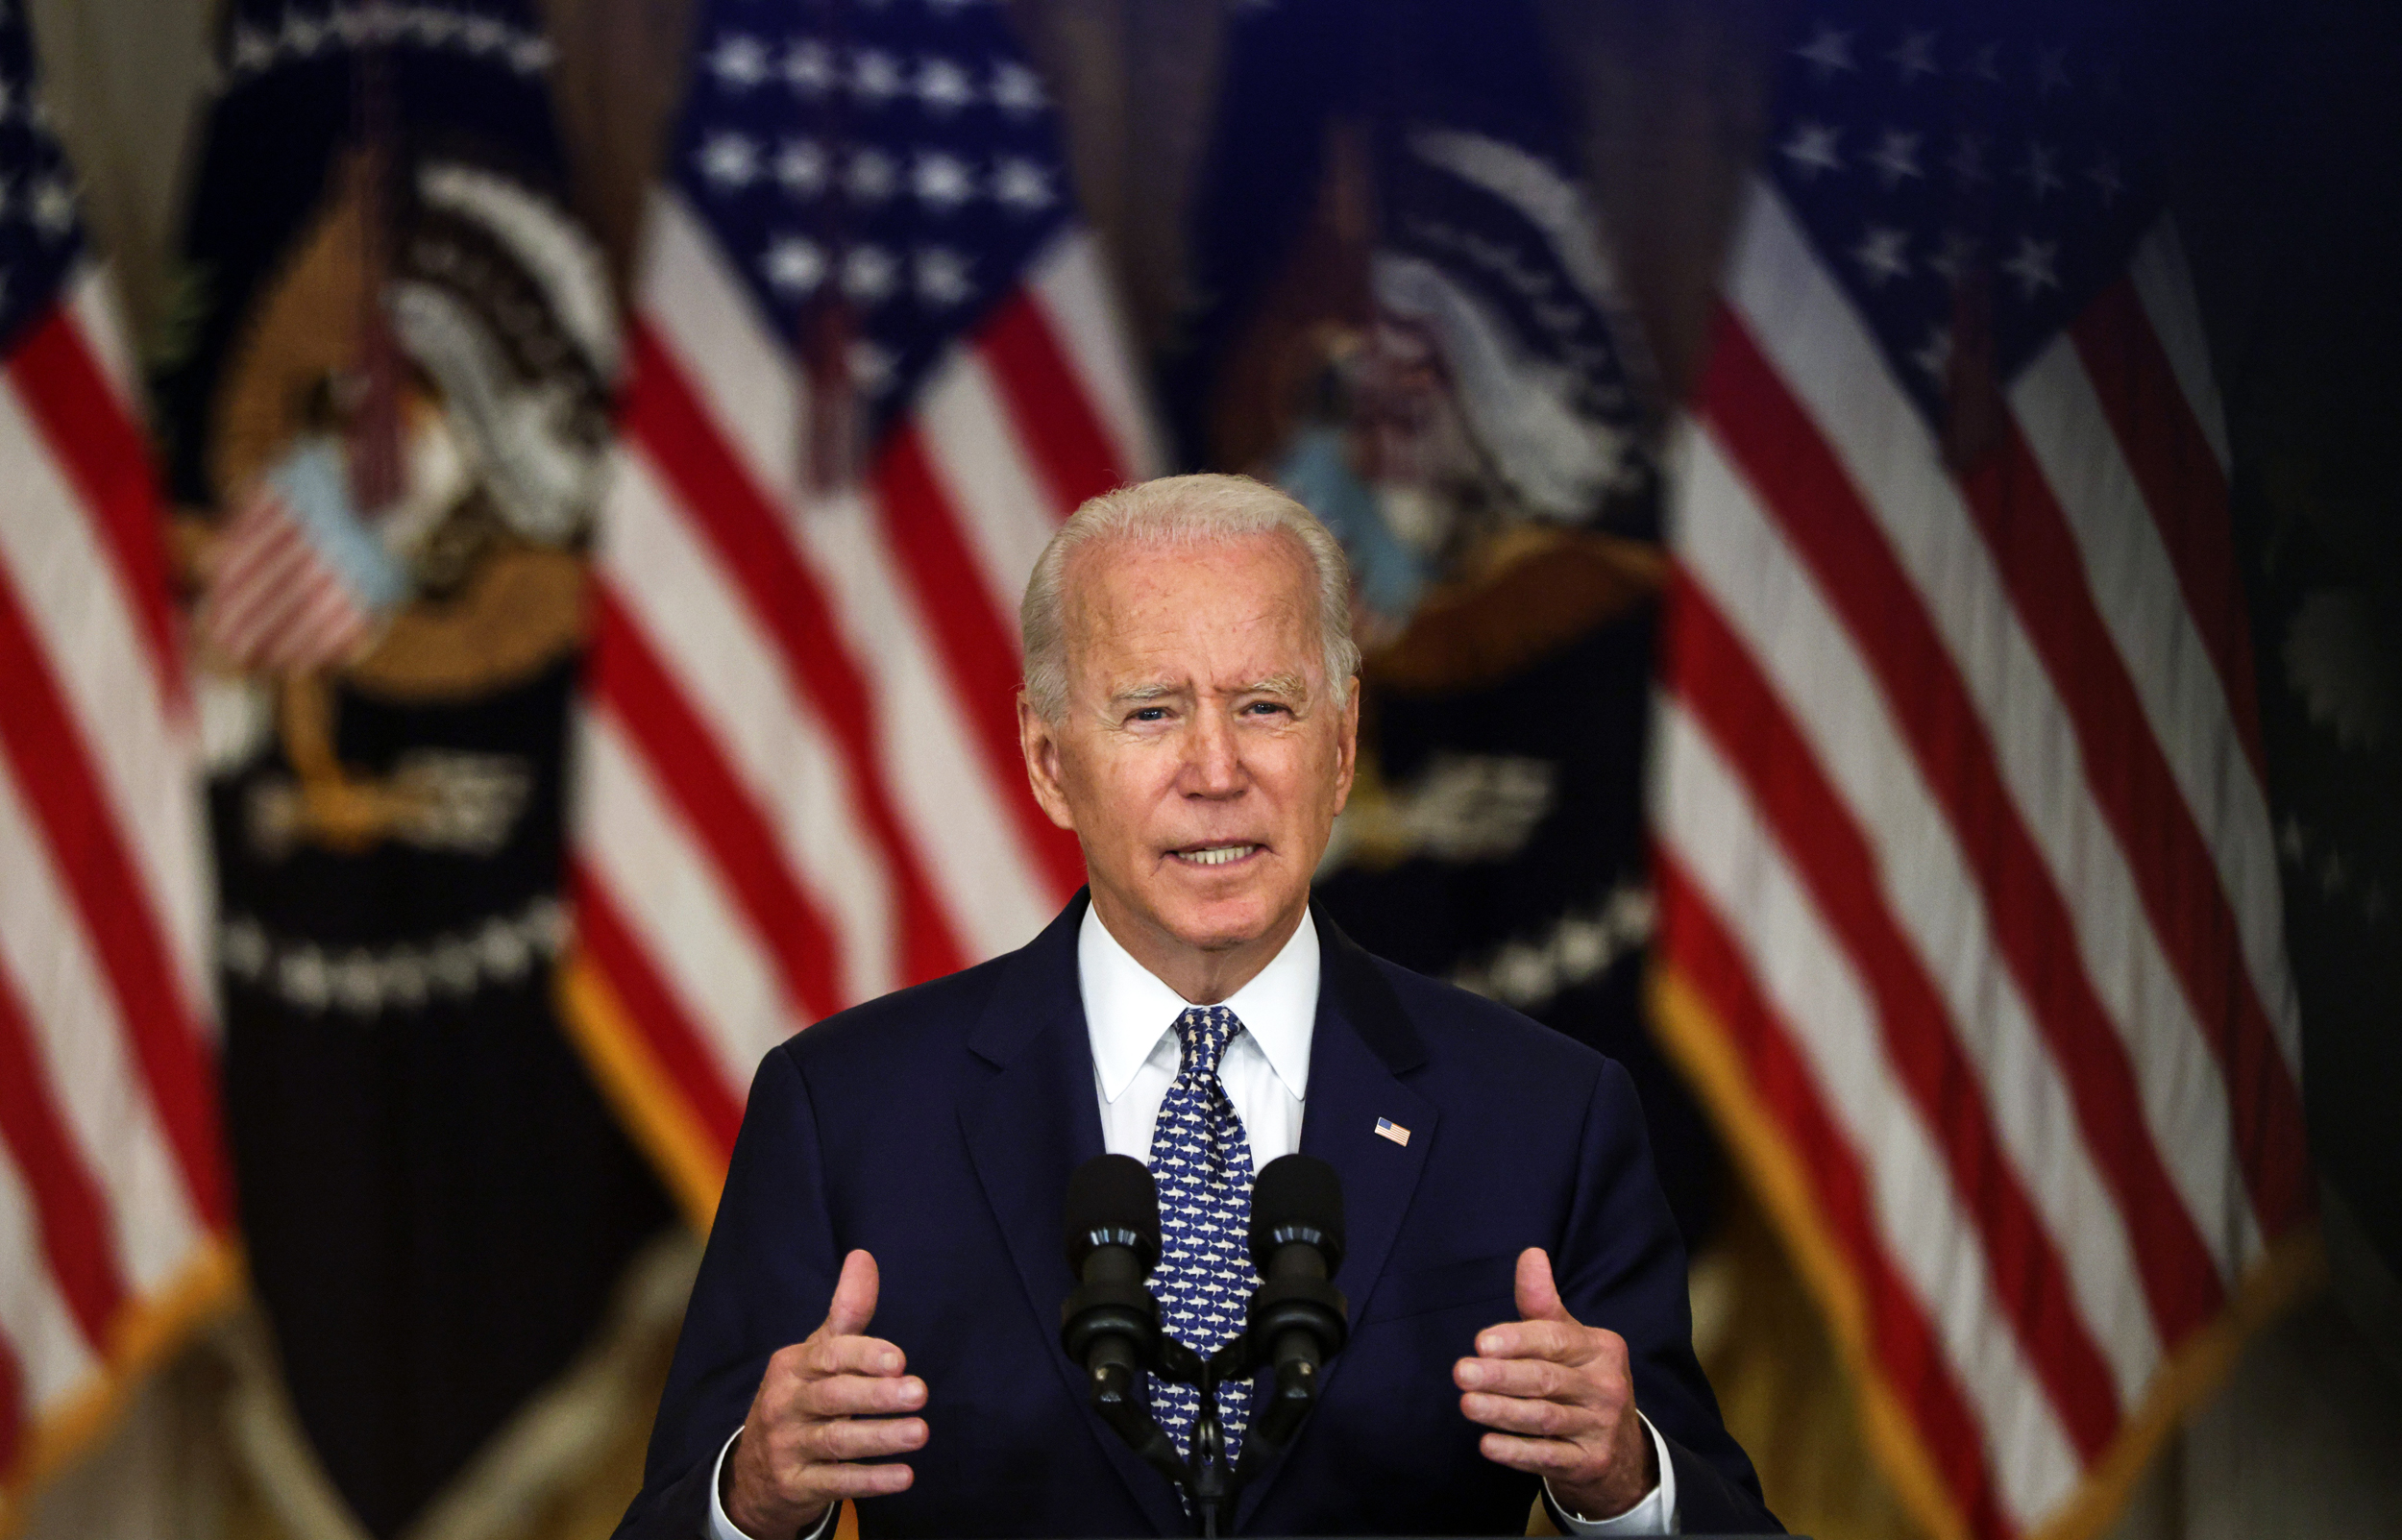 Biden expands vaccine mandate push to include thousands of HHS employees